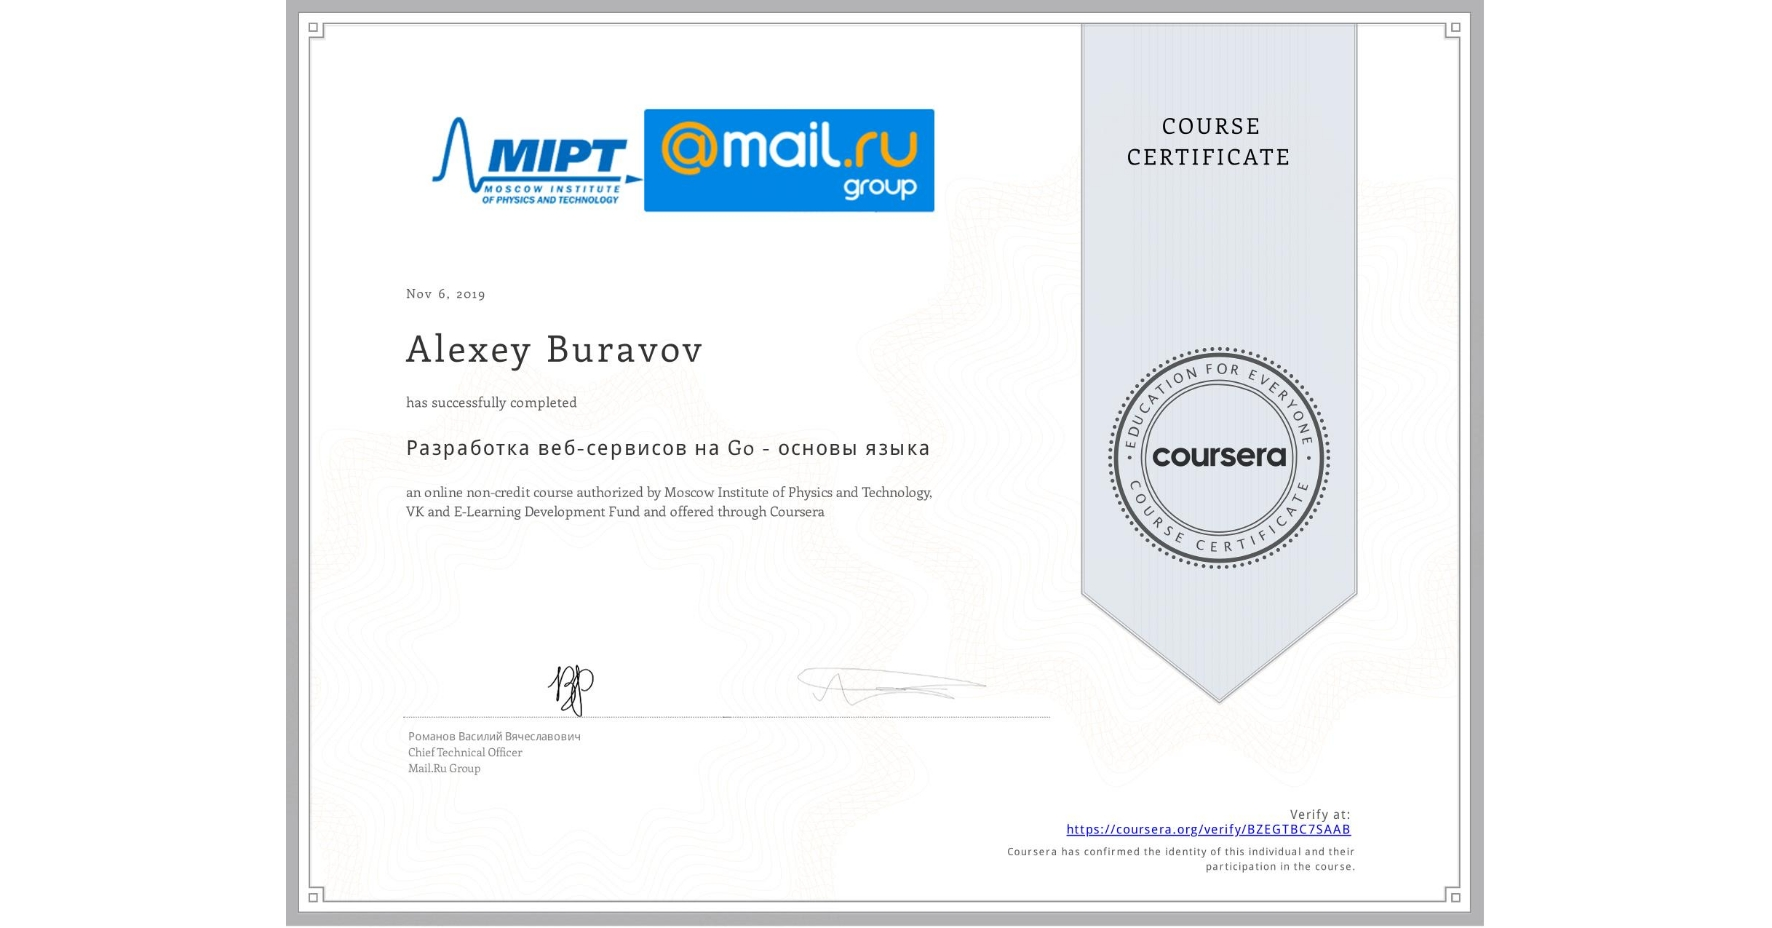 View certificate for Alexey Buravov, Разработка веб-сервисов на Go - основы языка, an online non-credit course authorized by Moscow Institute of Physics and Technology, Mail.Ru Group & ФРОО and offered through Coursera